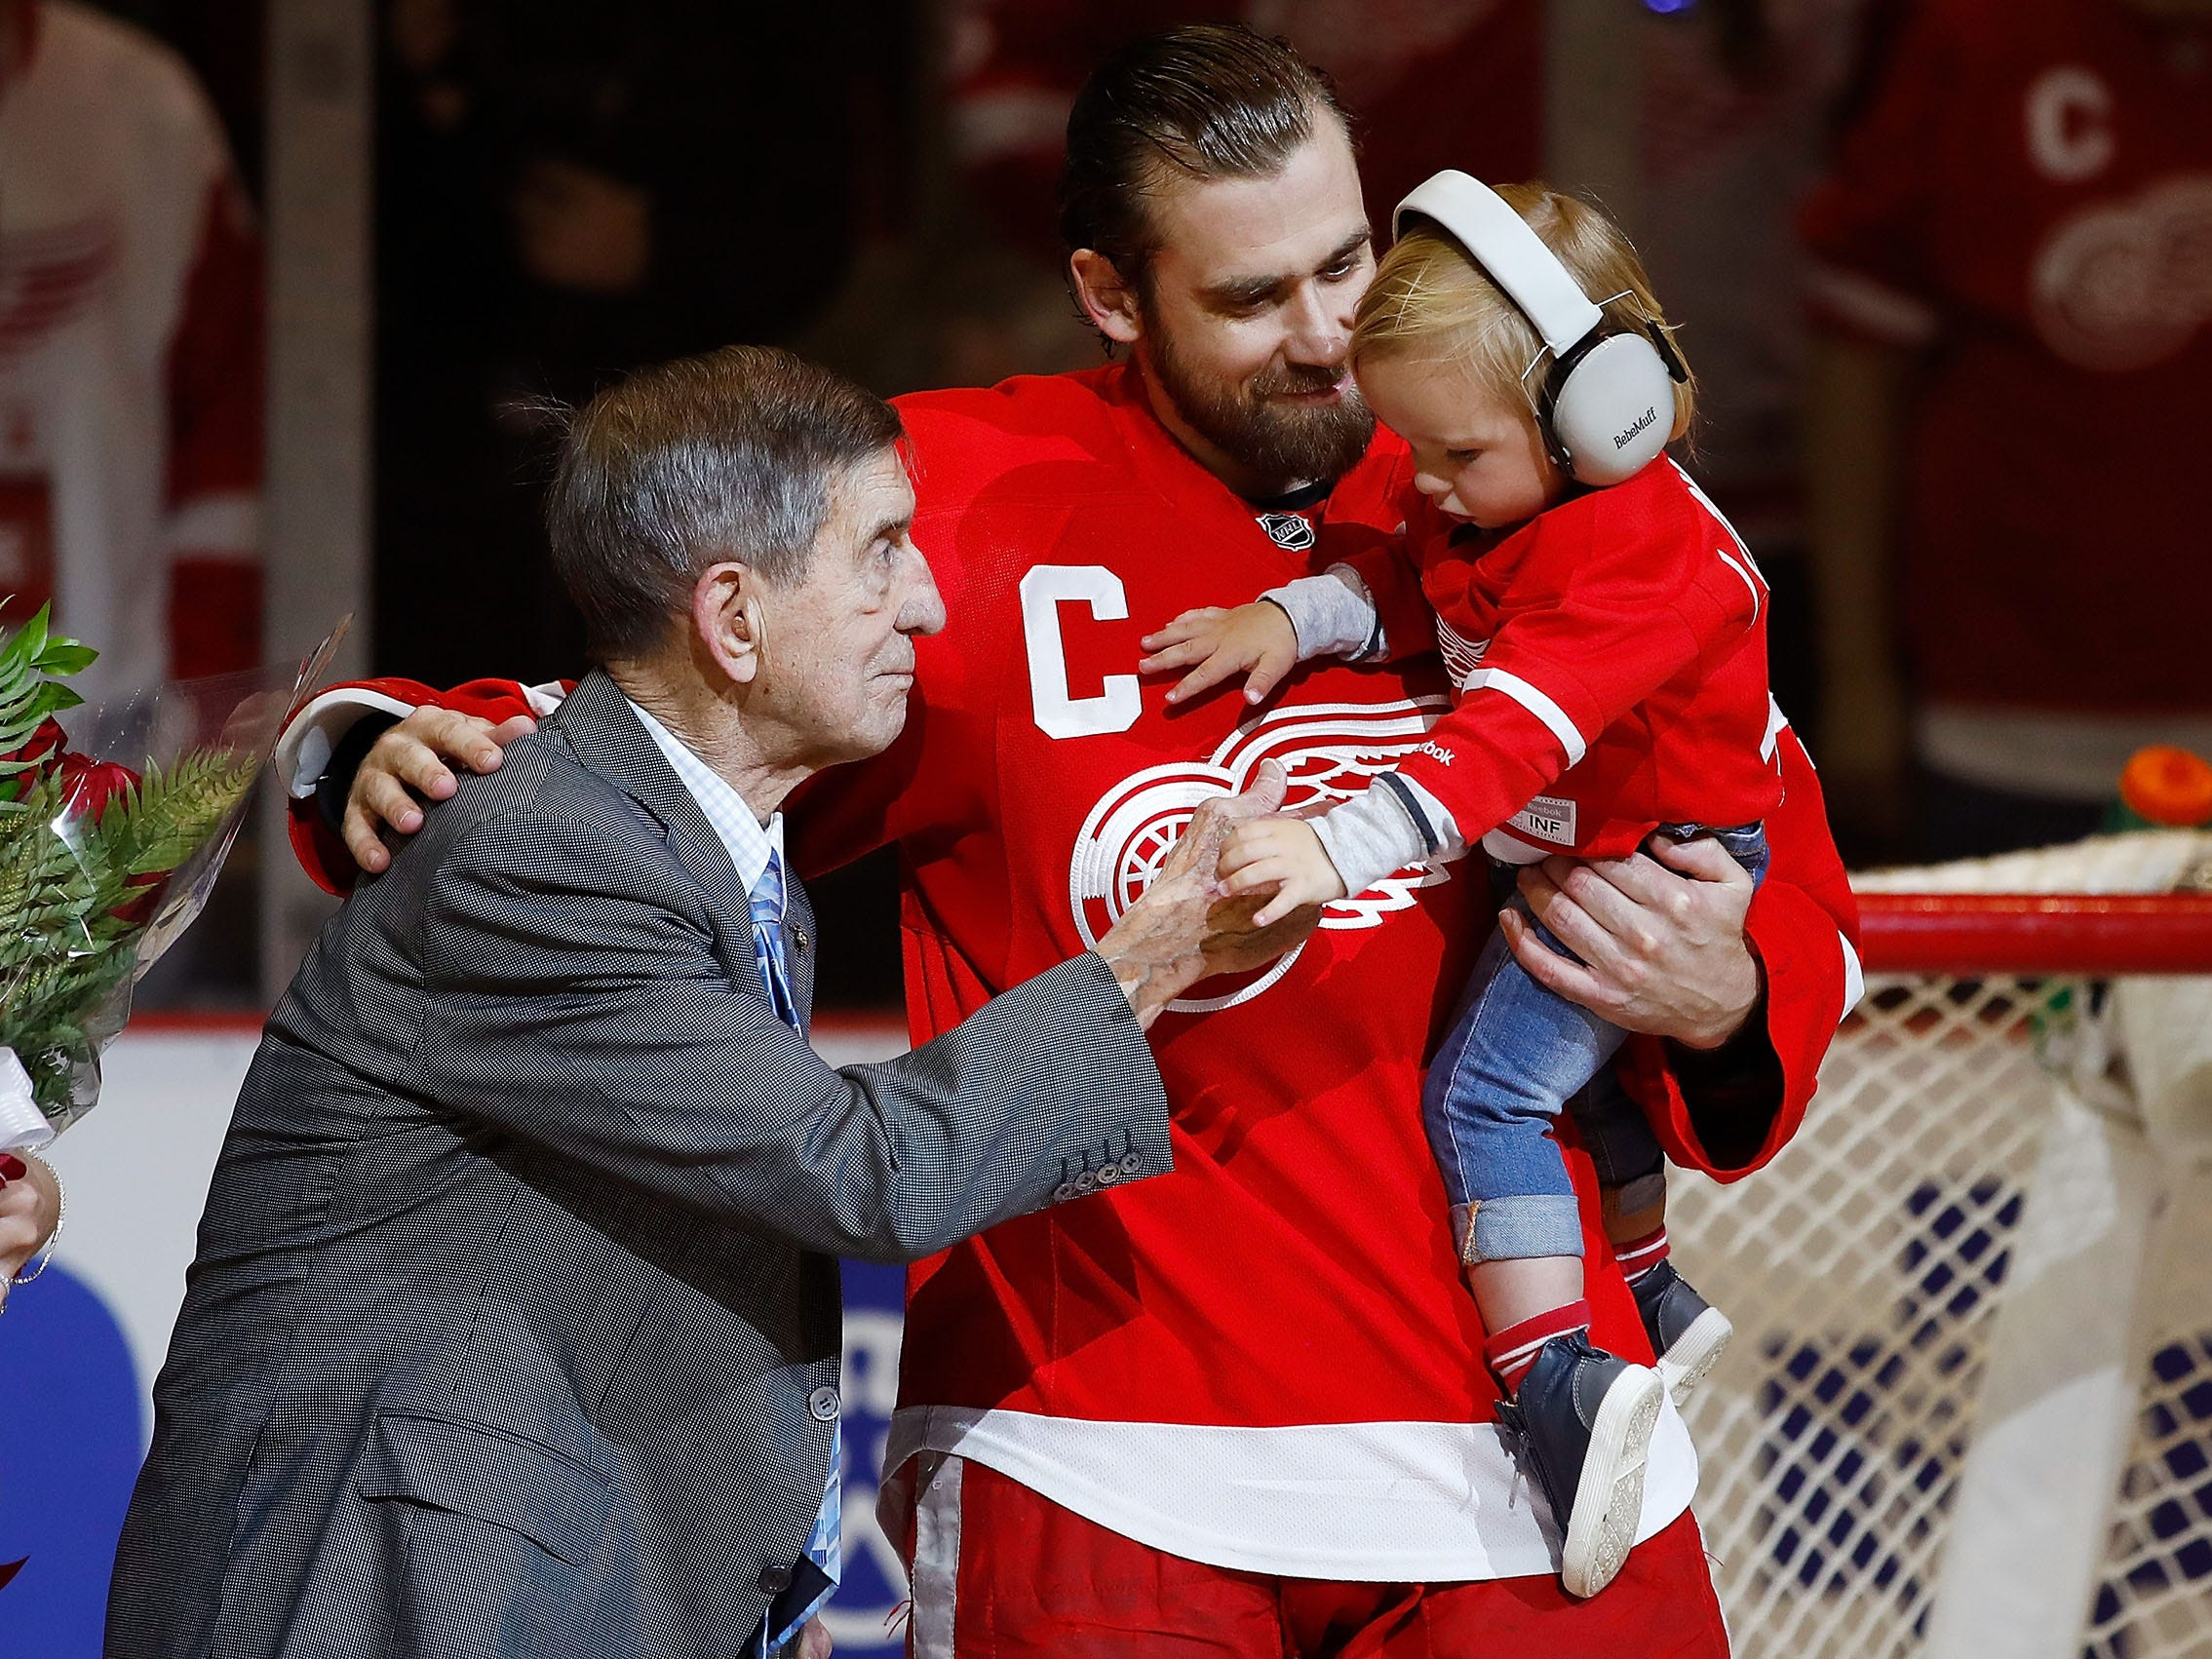 Henrik Zetterberg of the Red Wings, his son Love and Red Wings legend Ted Lindsay during presentation to honor his 1000th NHL game prior to a game against the New Jersey Devils at Joe Louis Arena on April 9, 2017 in Detroit.